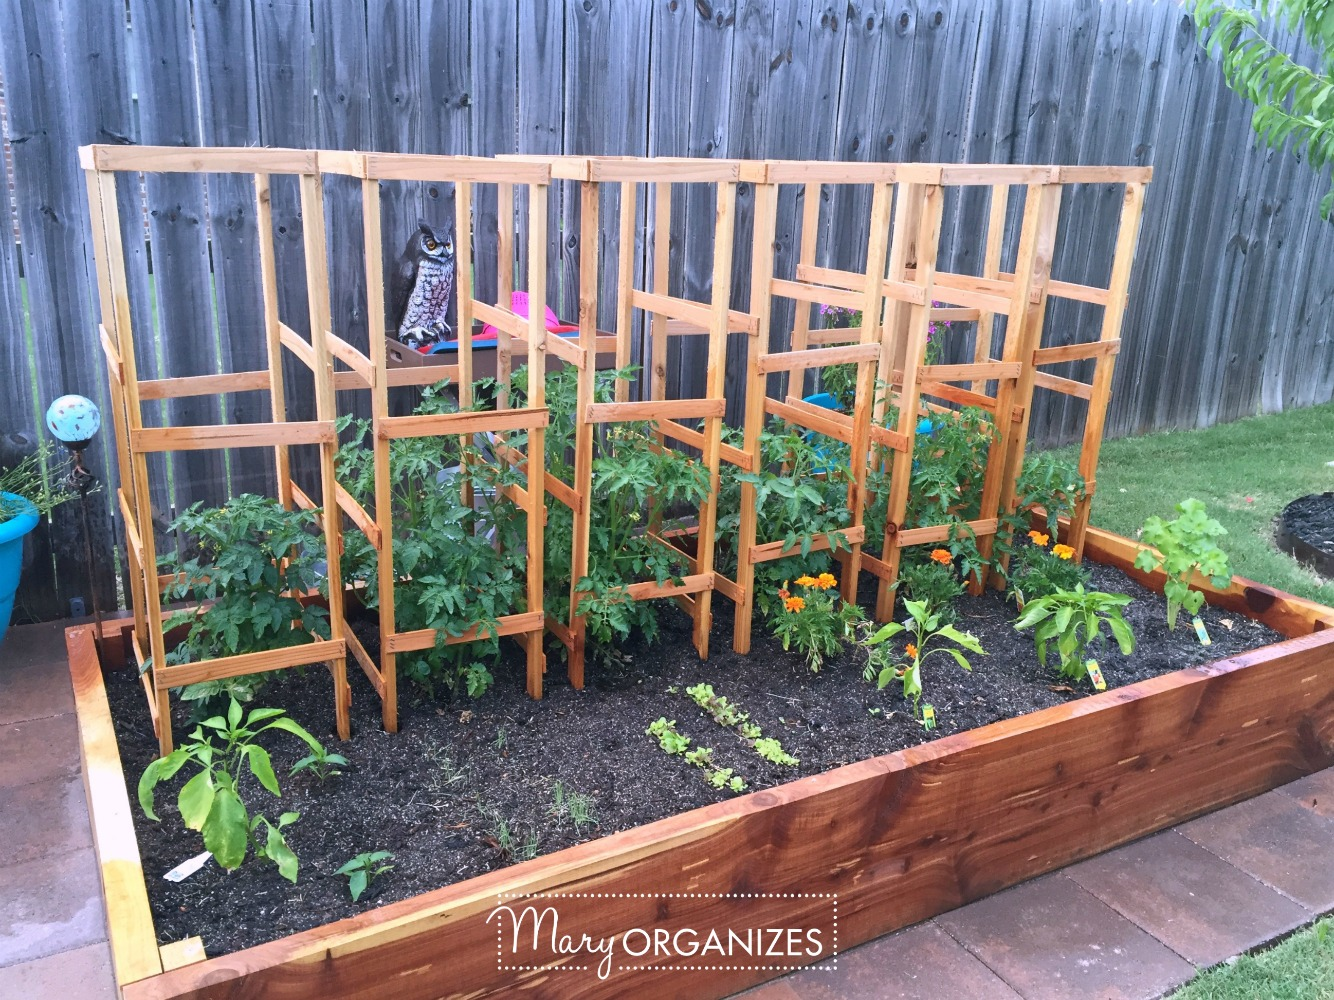 DIY Tomato Cage Tutorial for the Organic Garden 6